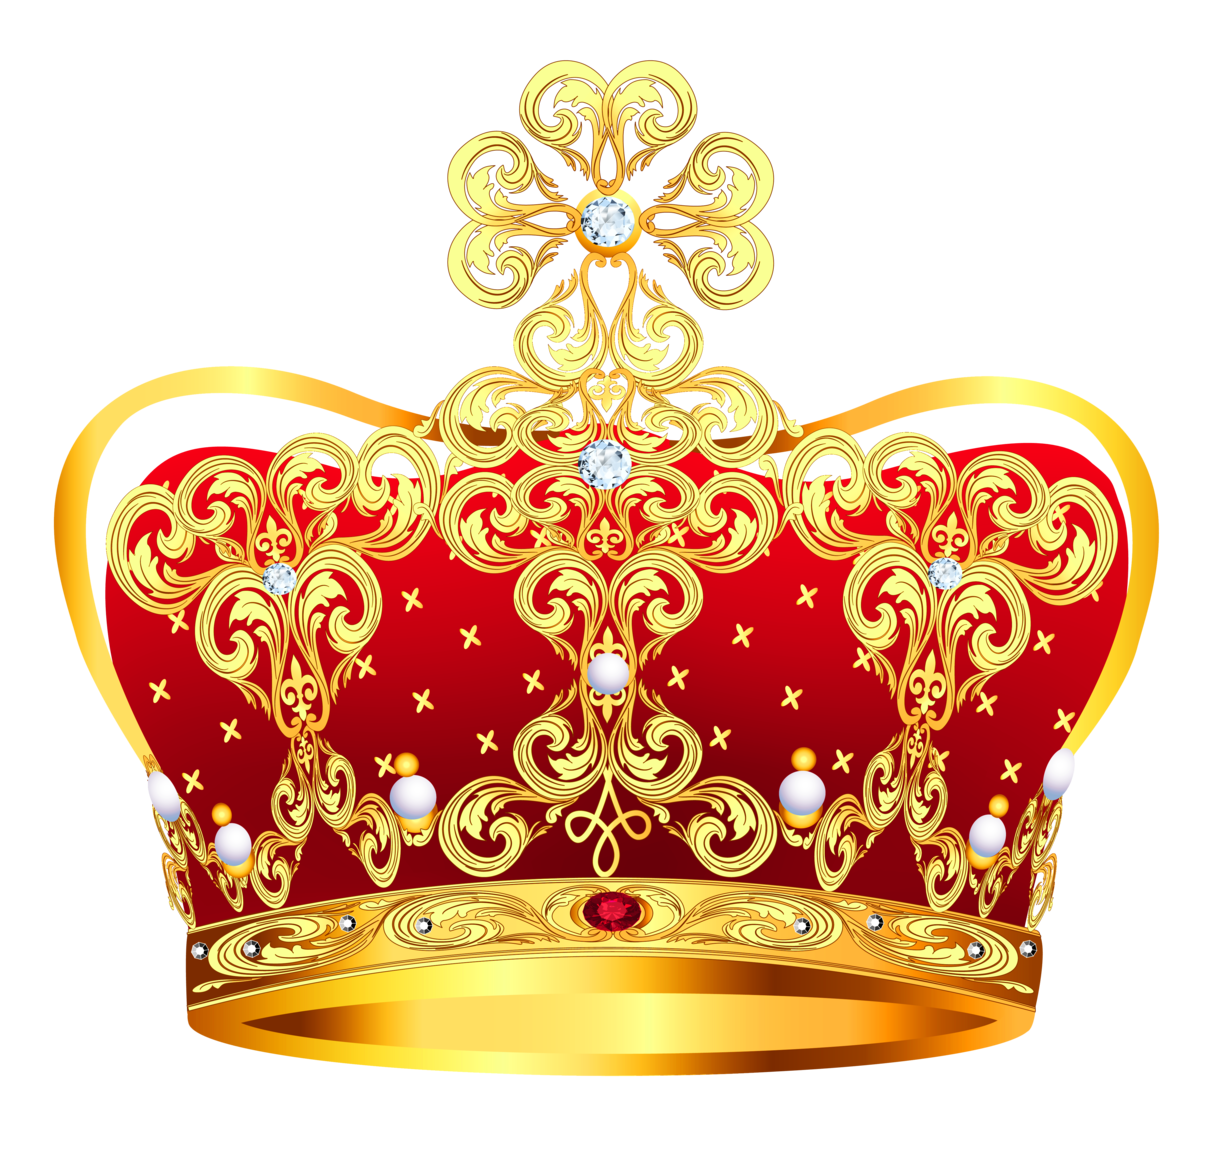 Queen clipart royal. Gold and red crown